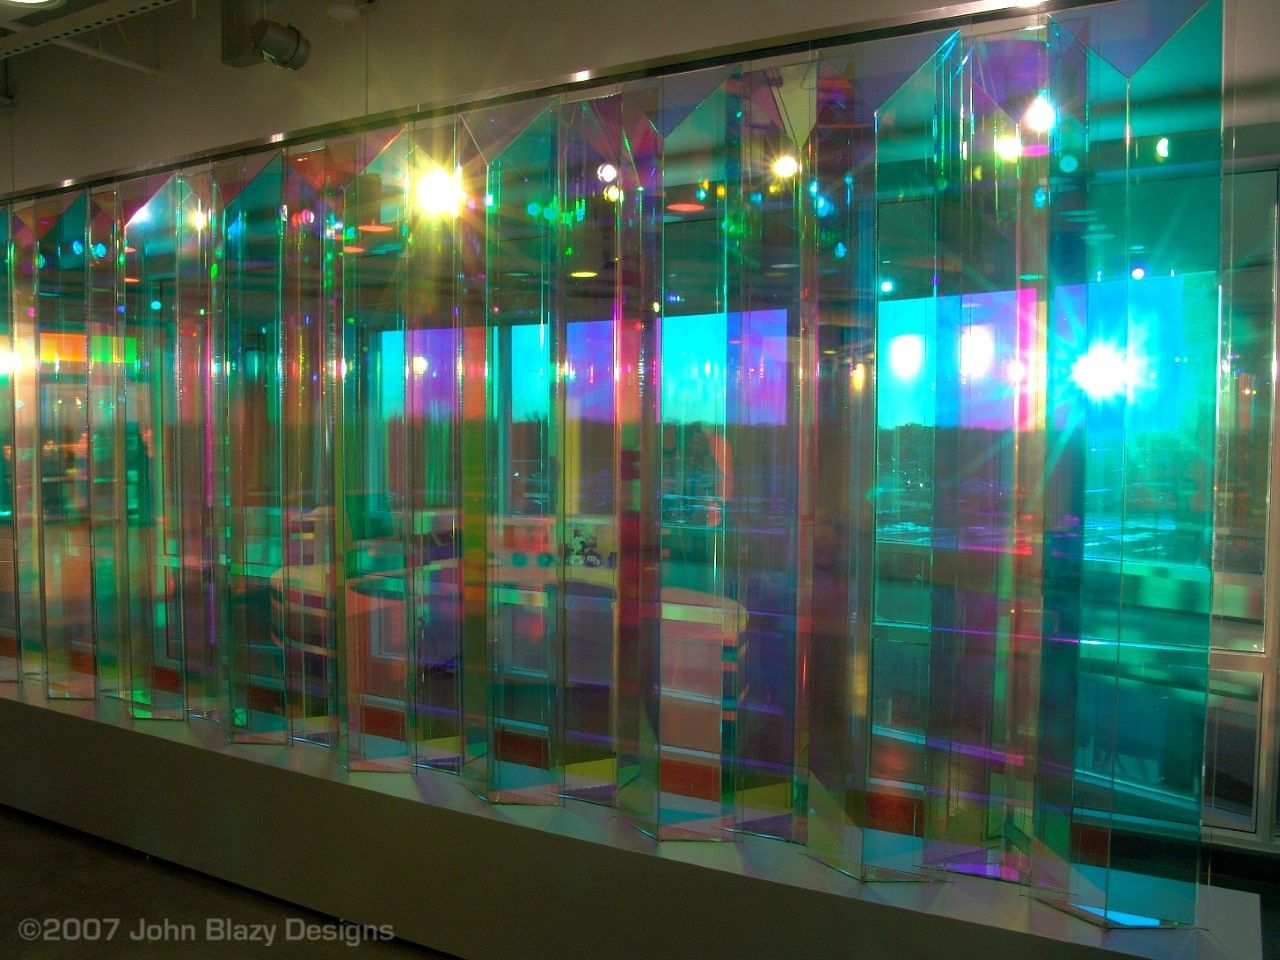 DICHROLAM Color Changing Architectural Glass Picture in your mind